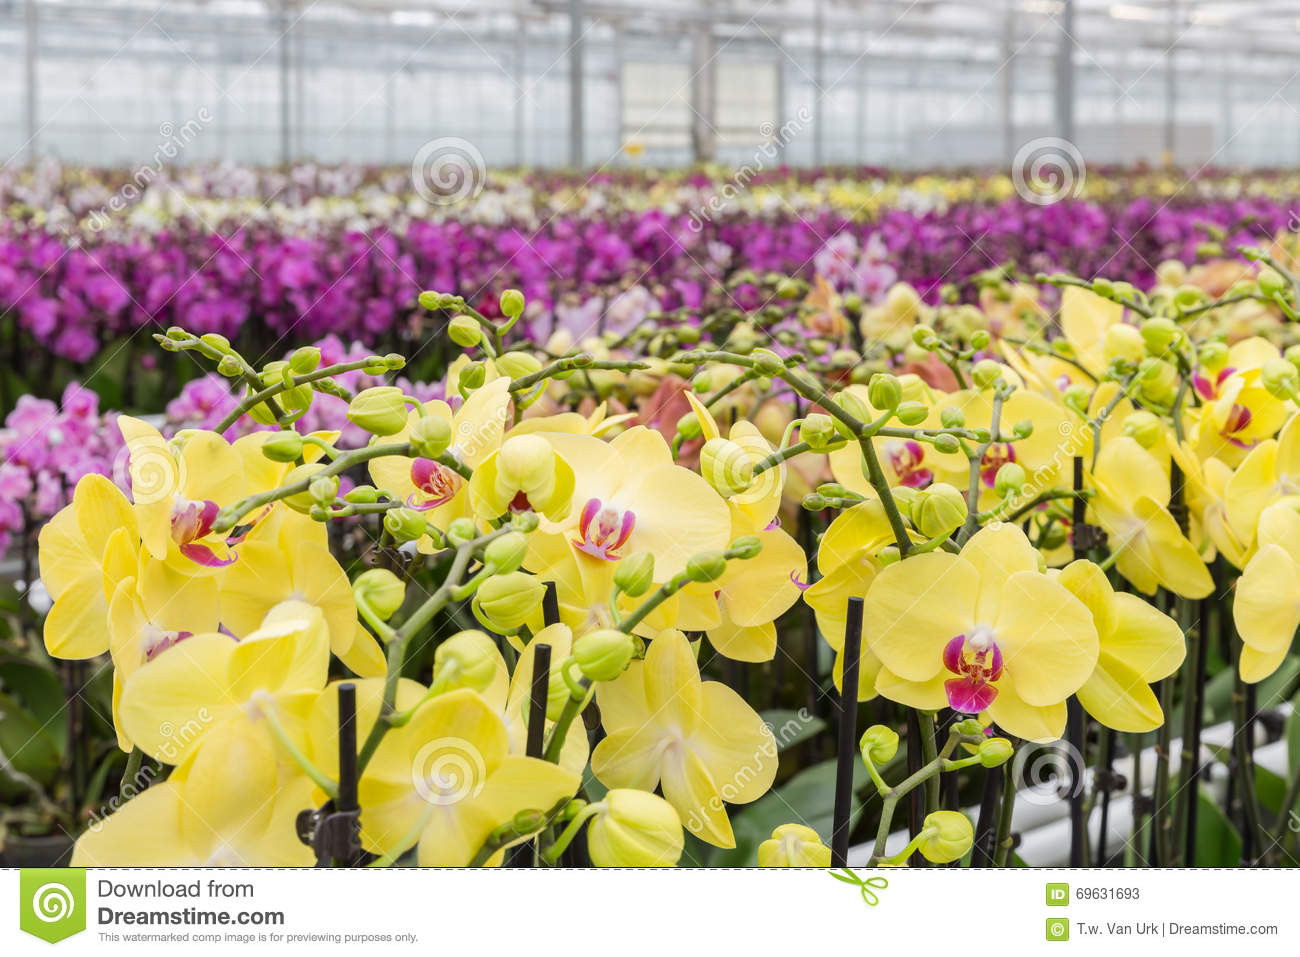 Flowers Growing In Foil Hothouse Garden Center Stock Image